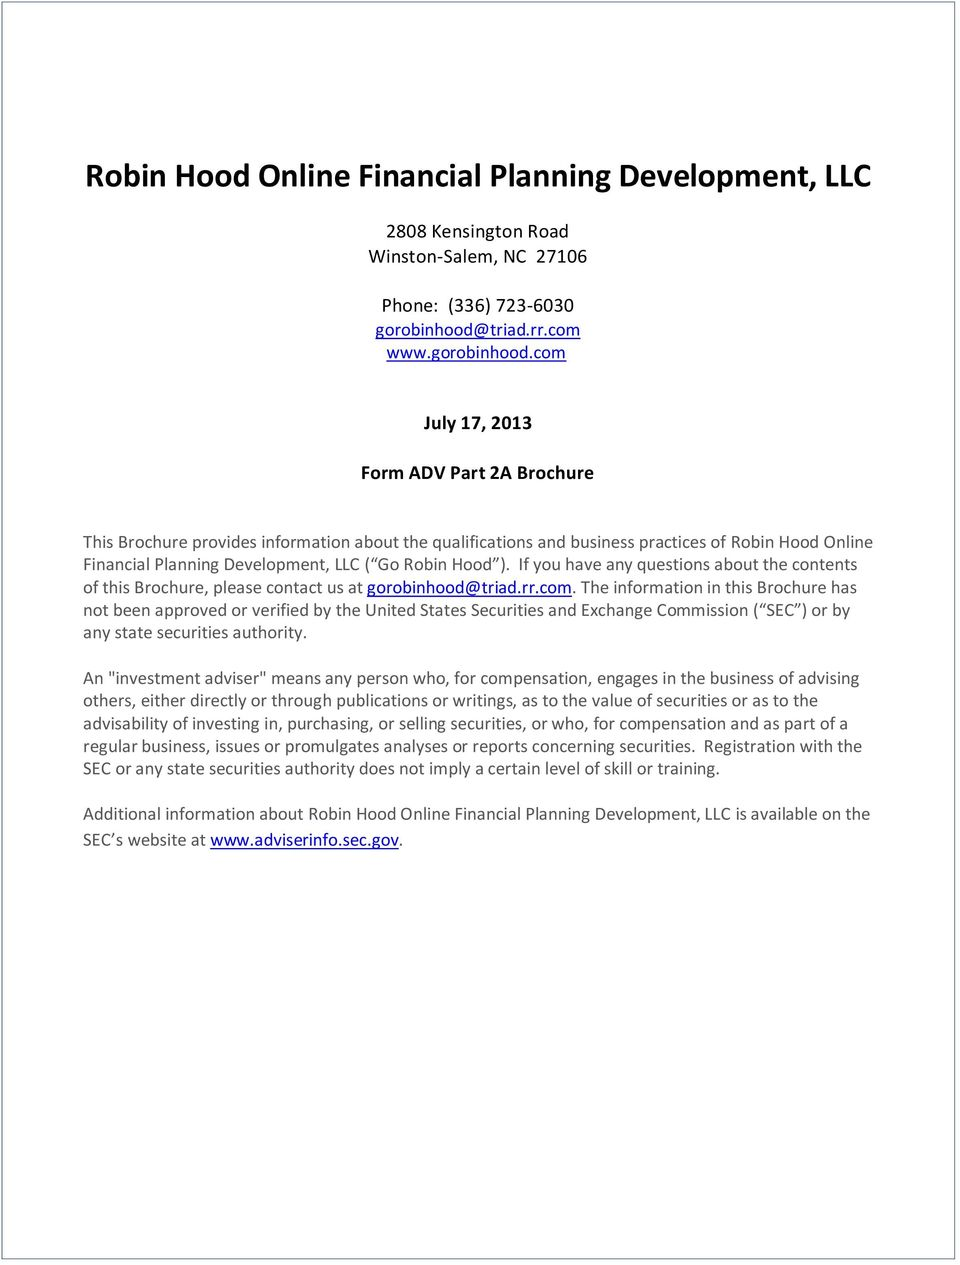 com July 17, 2013 Brochure This Brochure provides information about the qualifications and business practices of Robin Hood Online Financial Planning Development, LLC ( Go Robin Hood ).